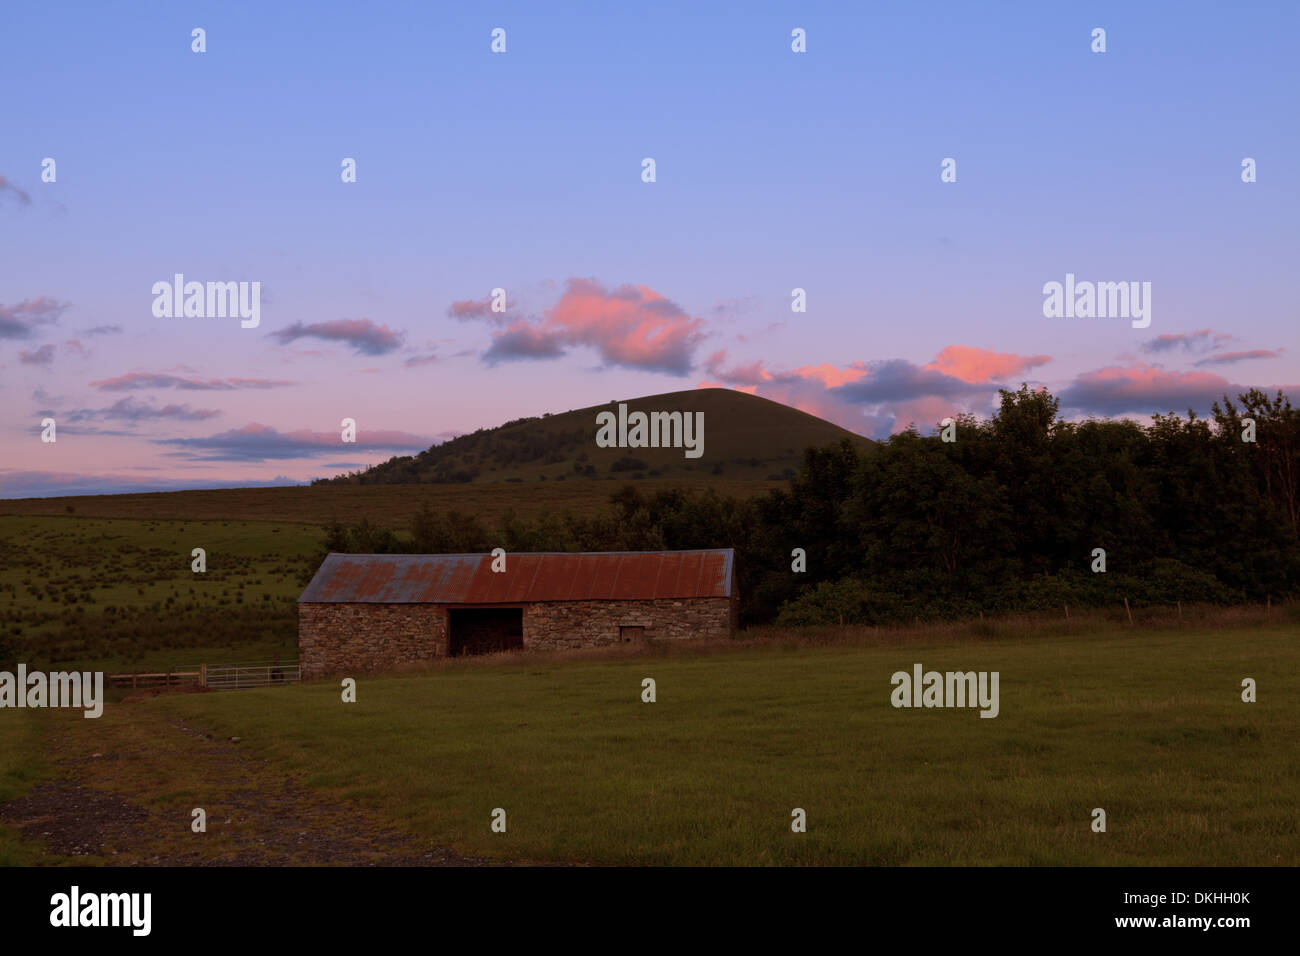 Scenic landscape view in romantic evening light, Troutbeck, Lake District area, Cumbria, England, Great Britain, United Kingdom. - Stock Image